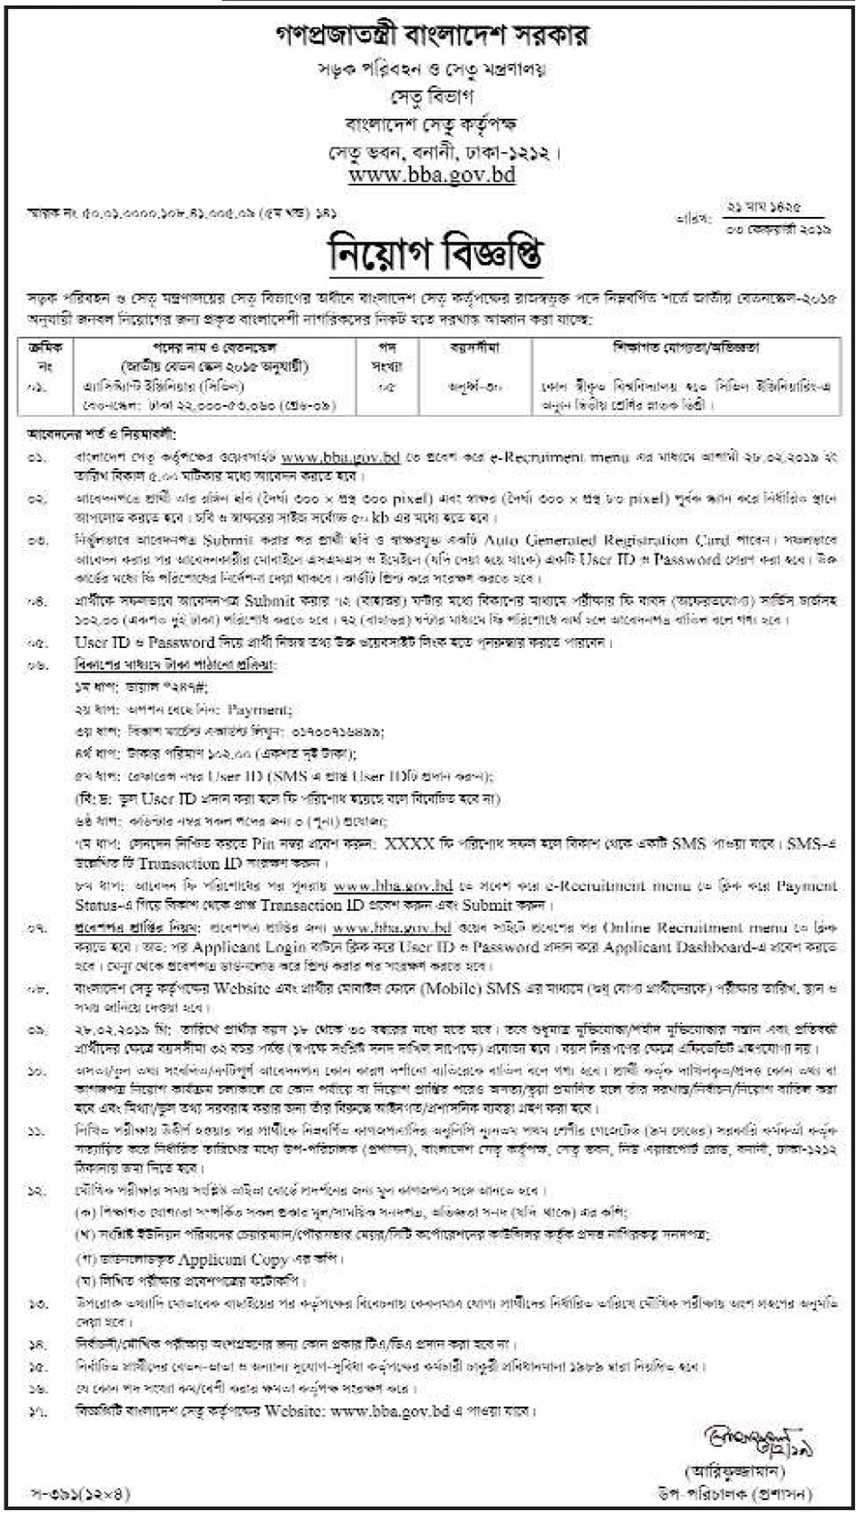 Bangladesh Bridge Authority (BBA) Job Circular 2019